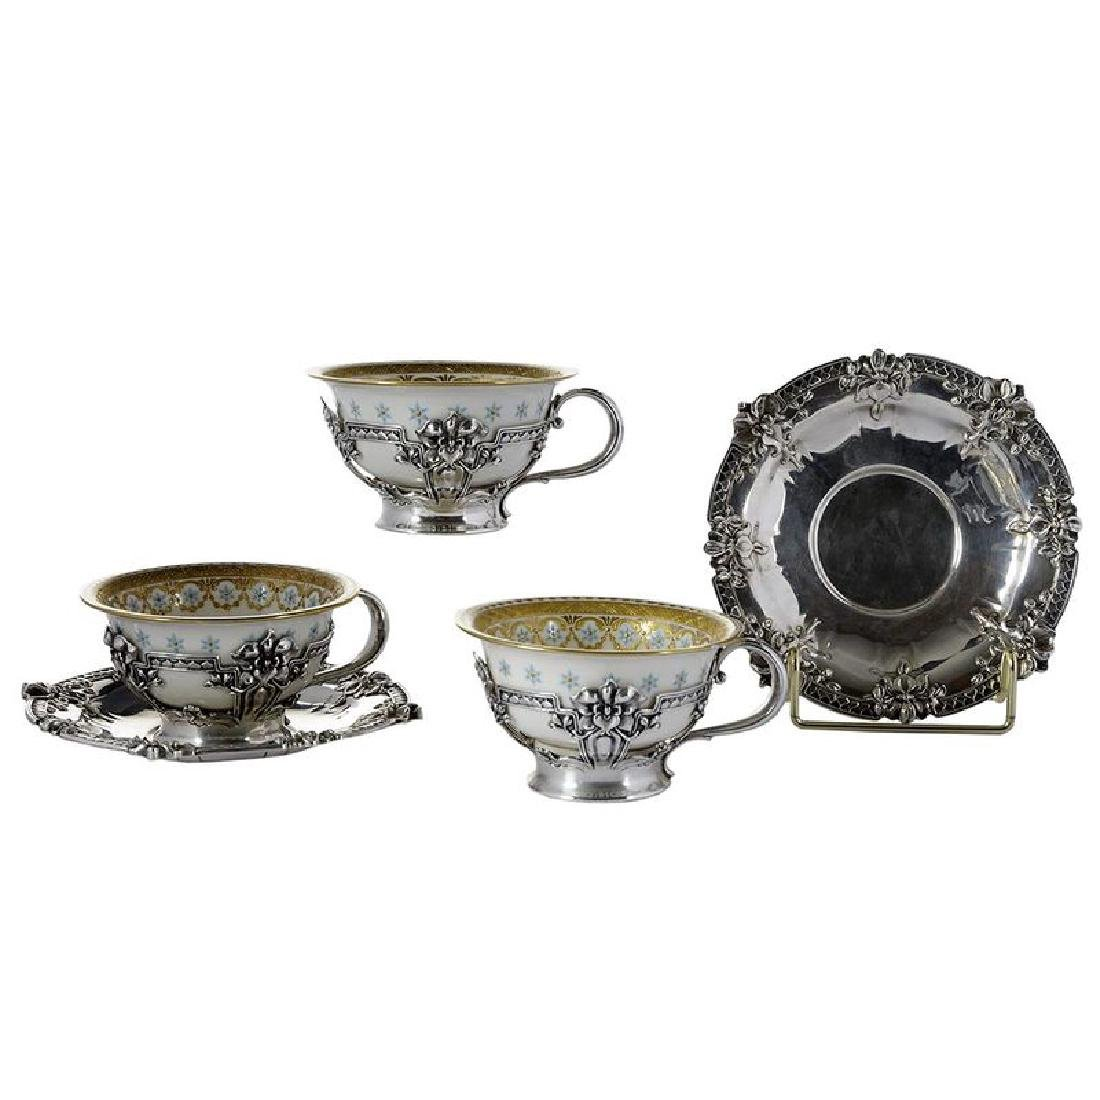 Set of Ten Tiffany Sterling Teacups and Saucers